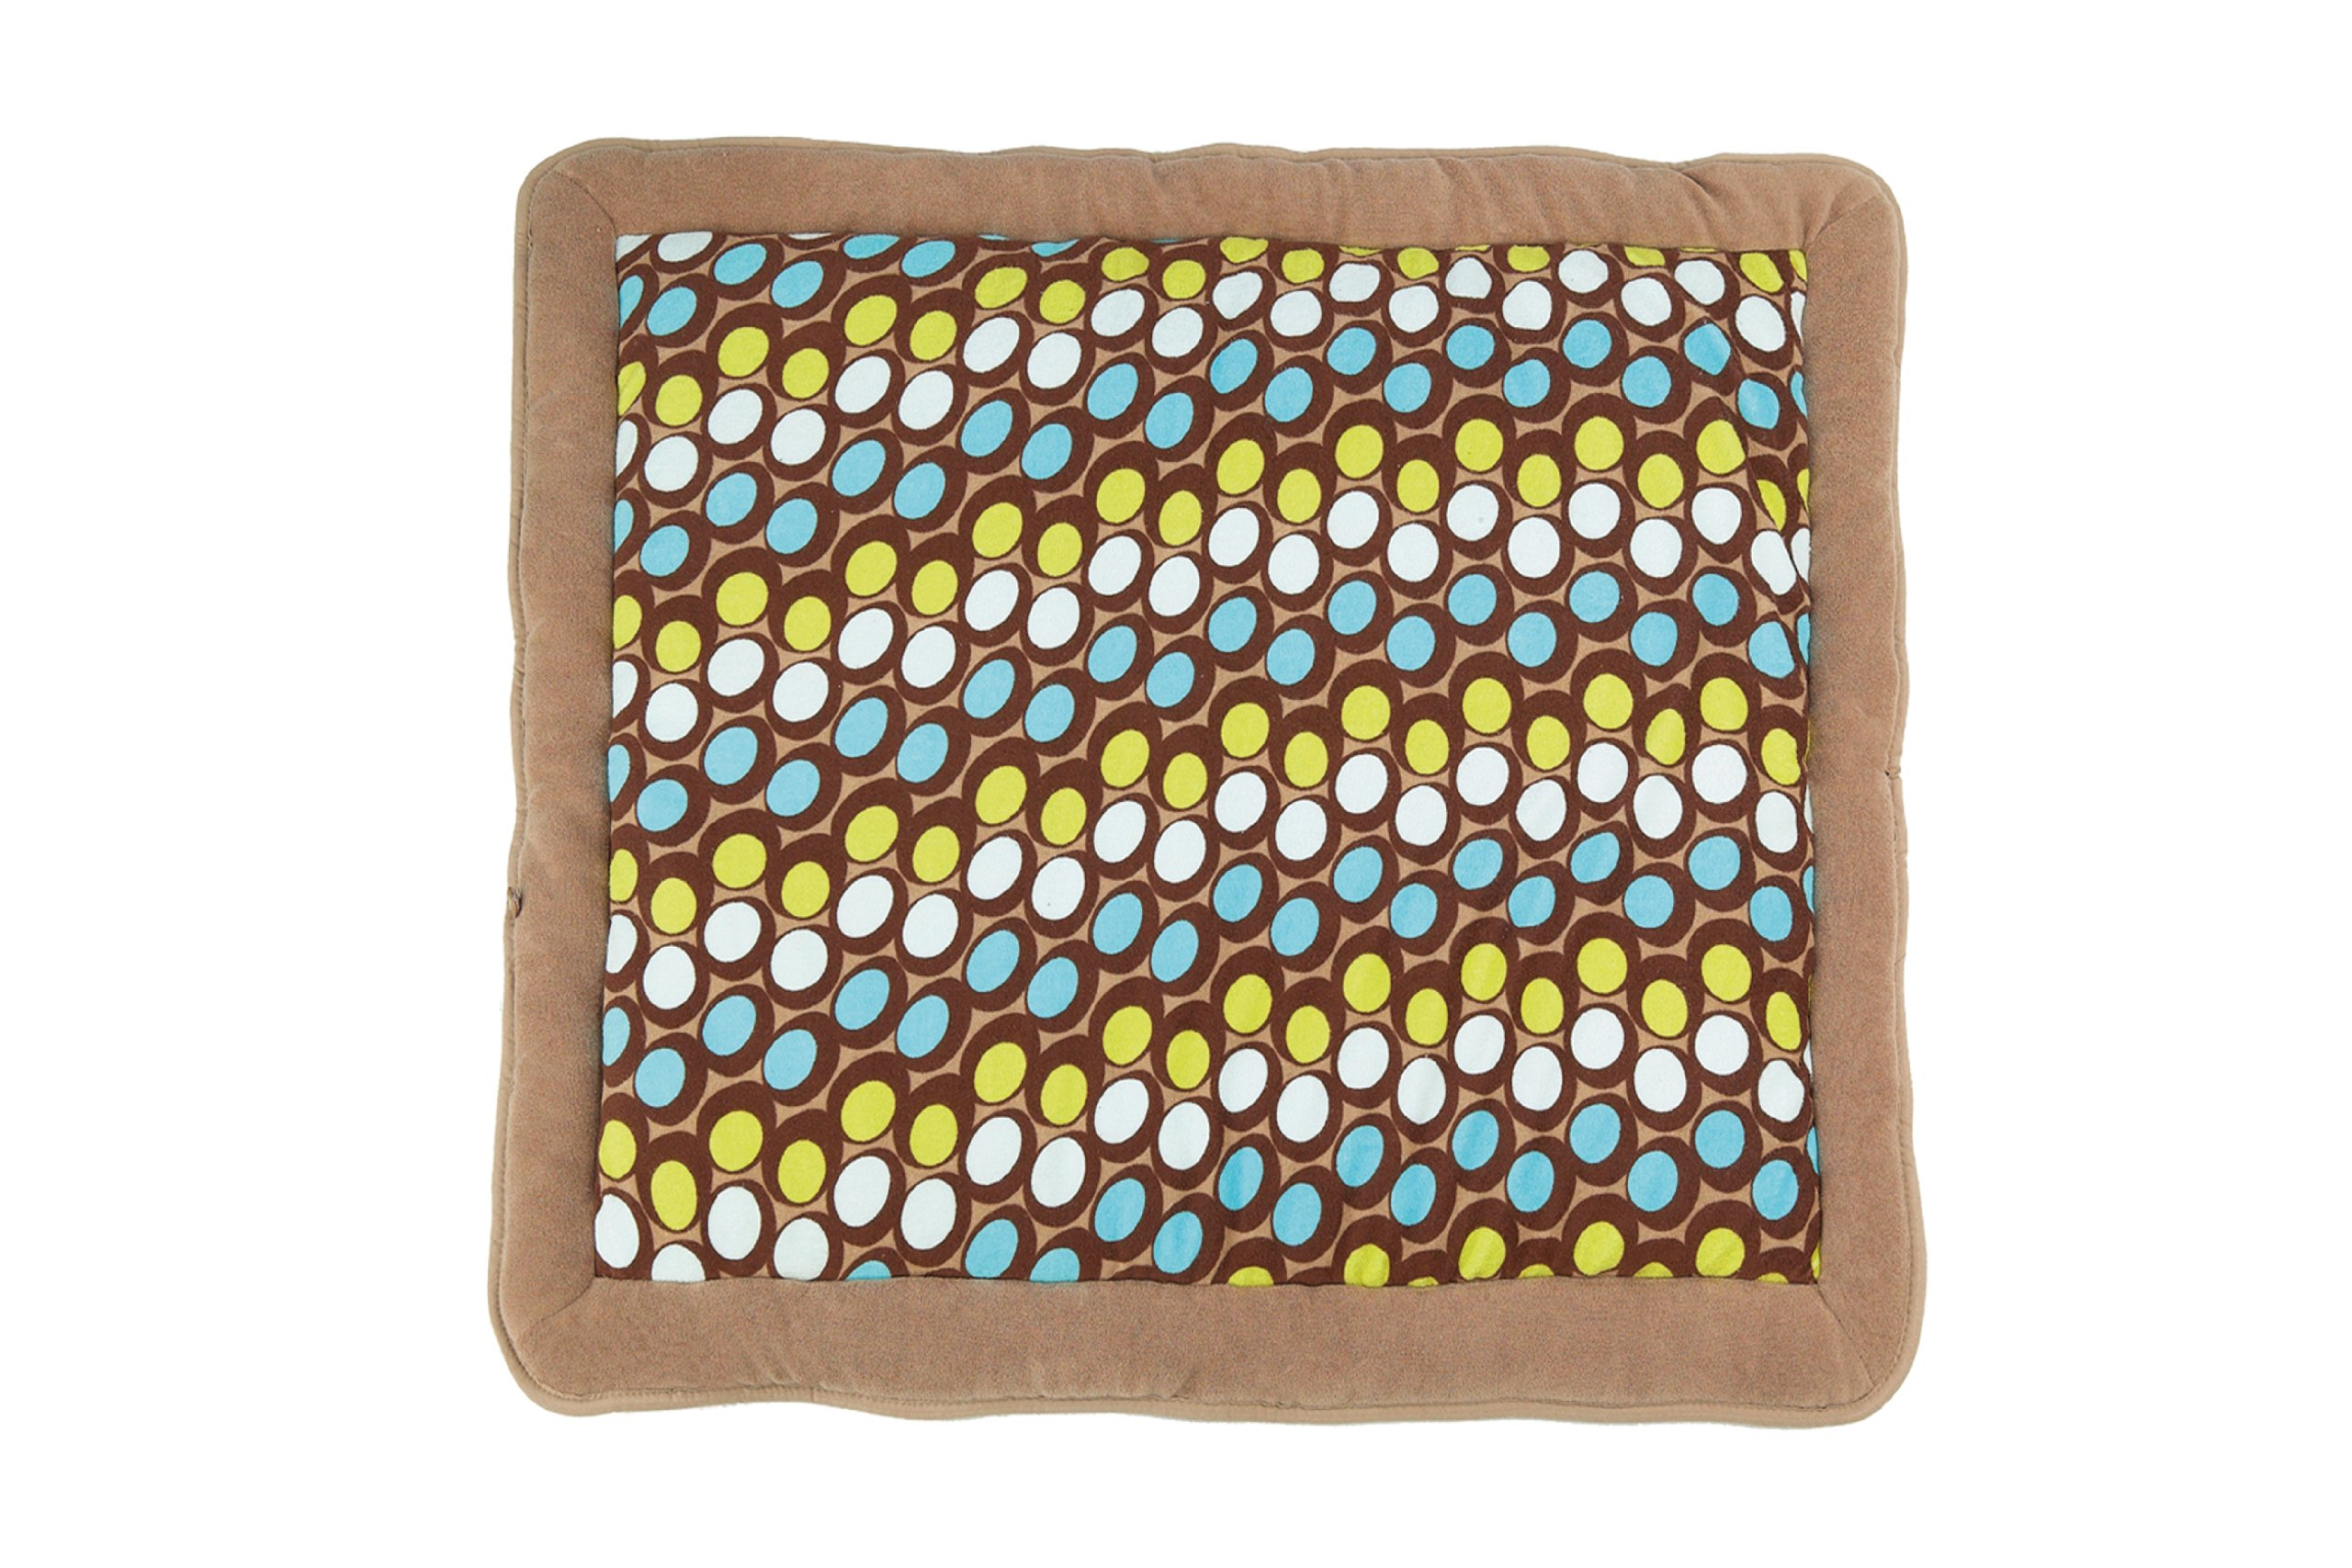 Baby Boum 100 x 100cm Padded Play Mat from The Sisko